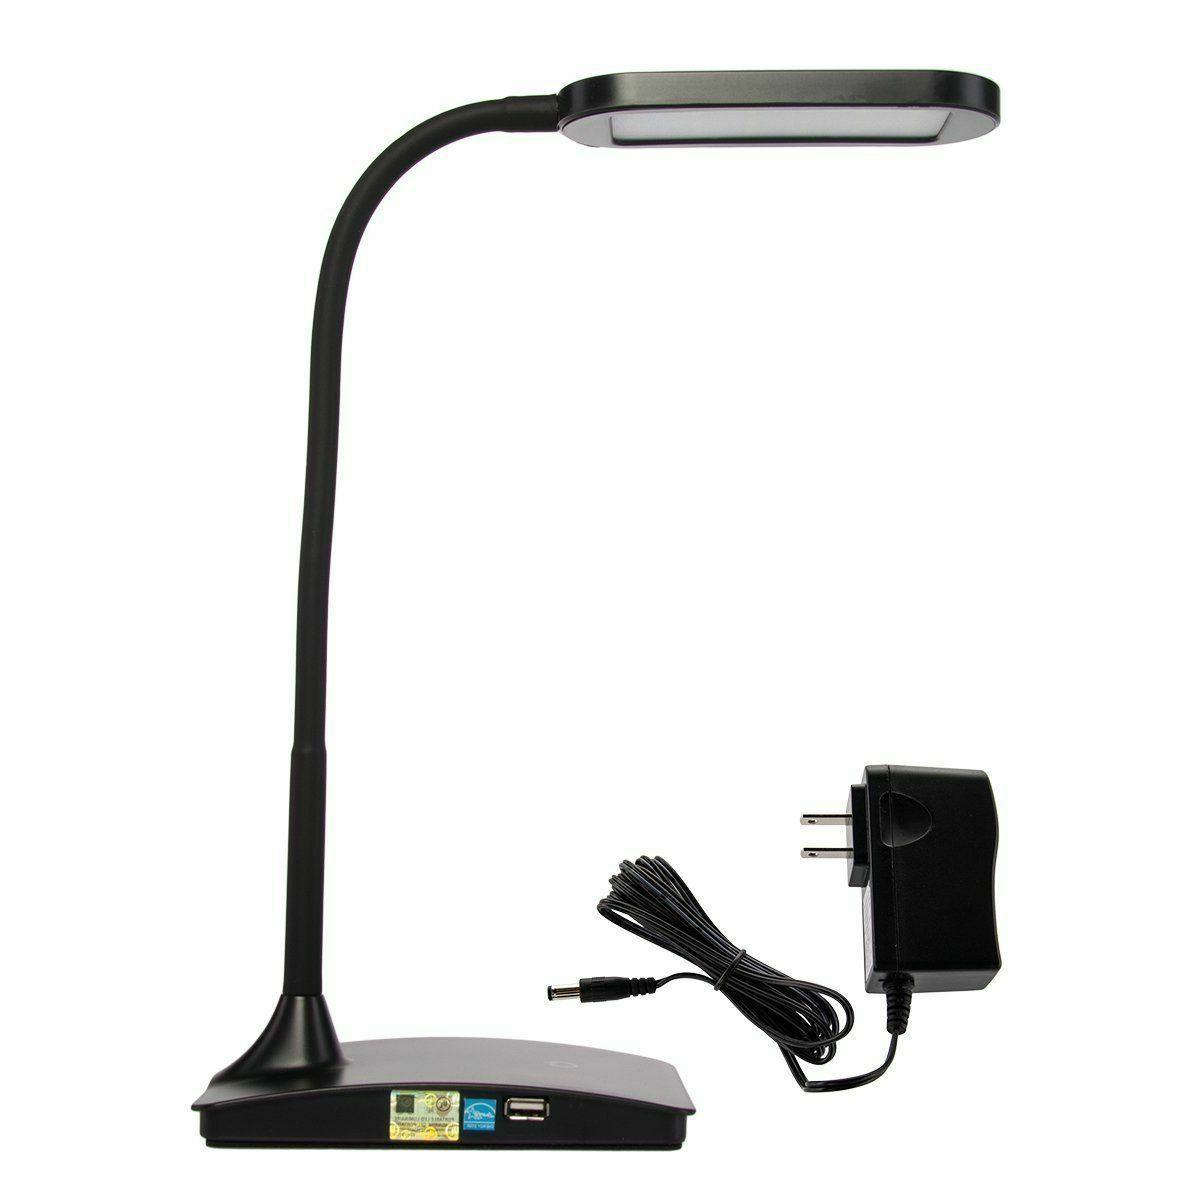 TW IVY LED Desk Lamp with Touch Switch